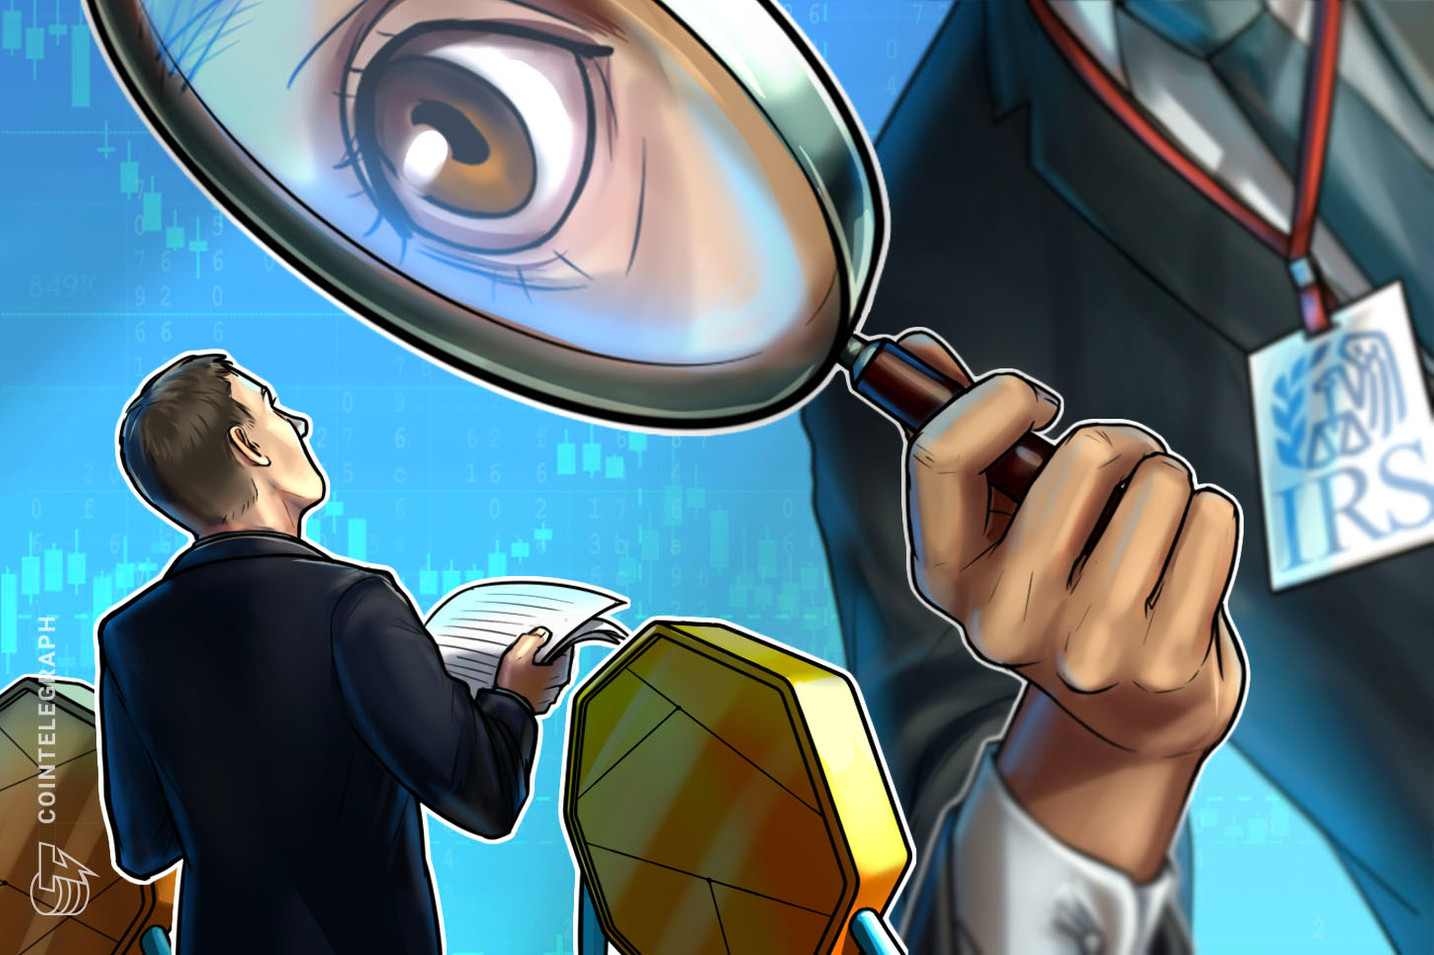 US Treasury proposes crypto transactions over $10K be reported to IRS